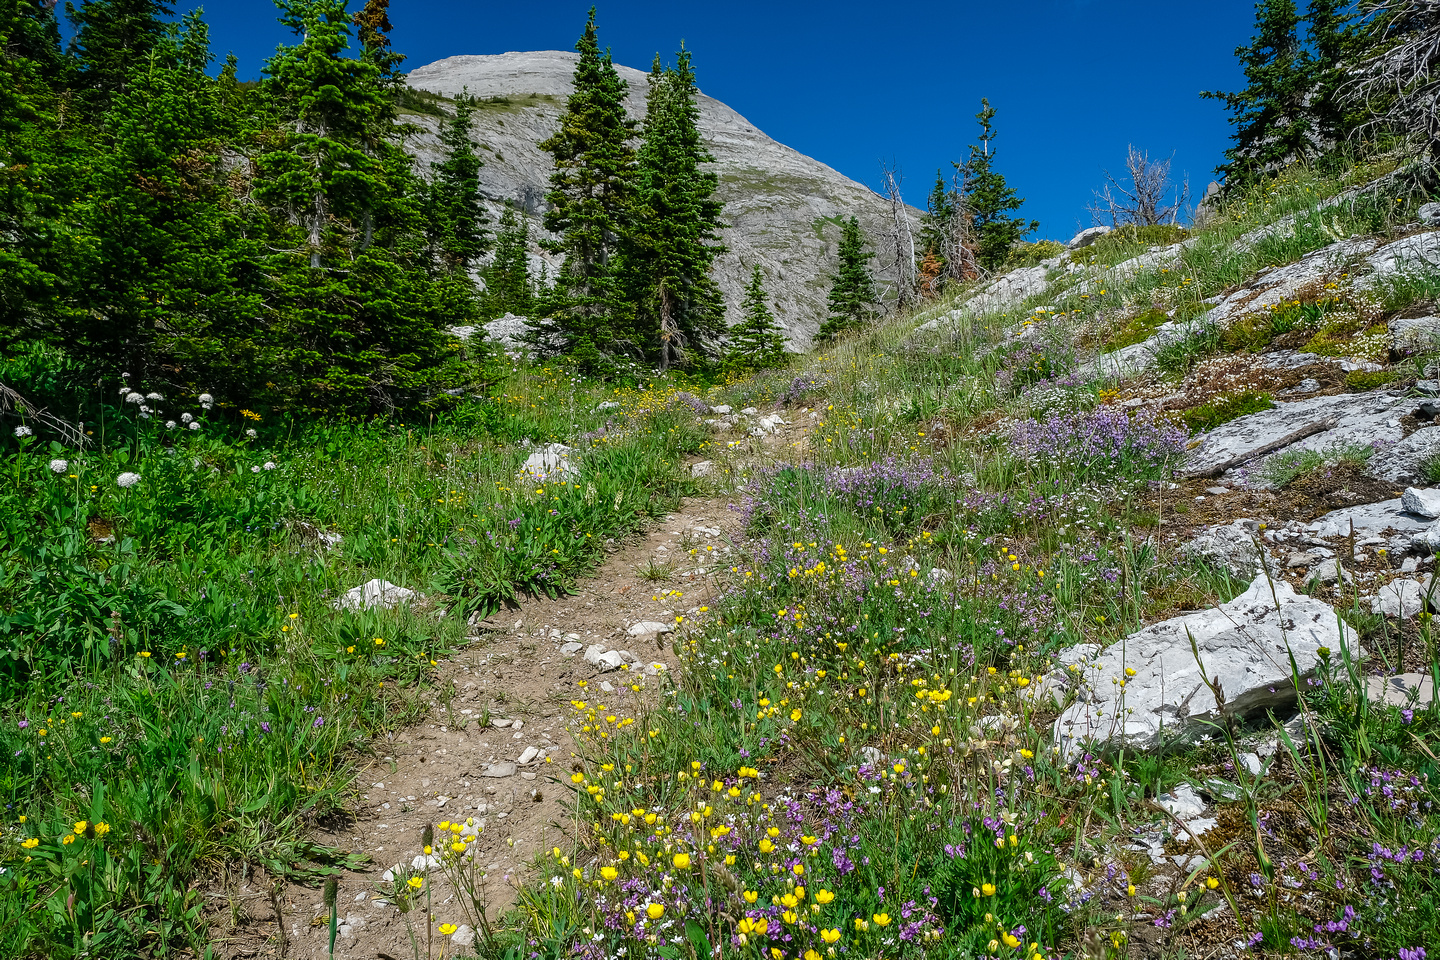 The trail approaches tree line. The pass visible above. TONS of flowers here.